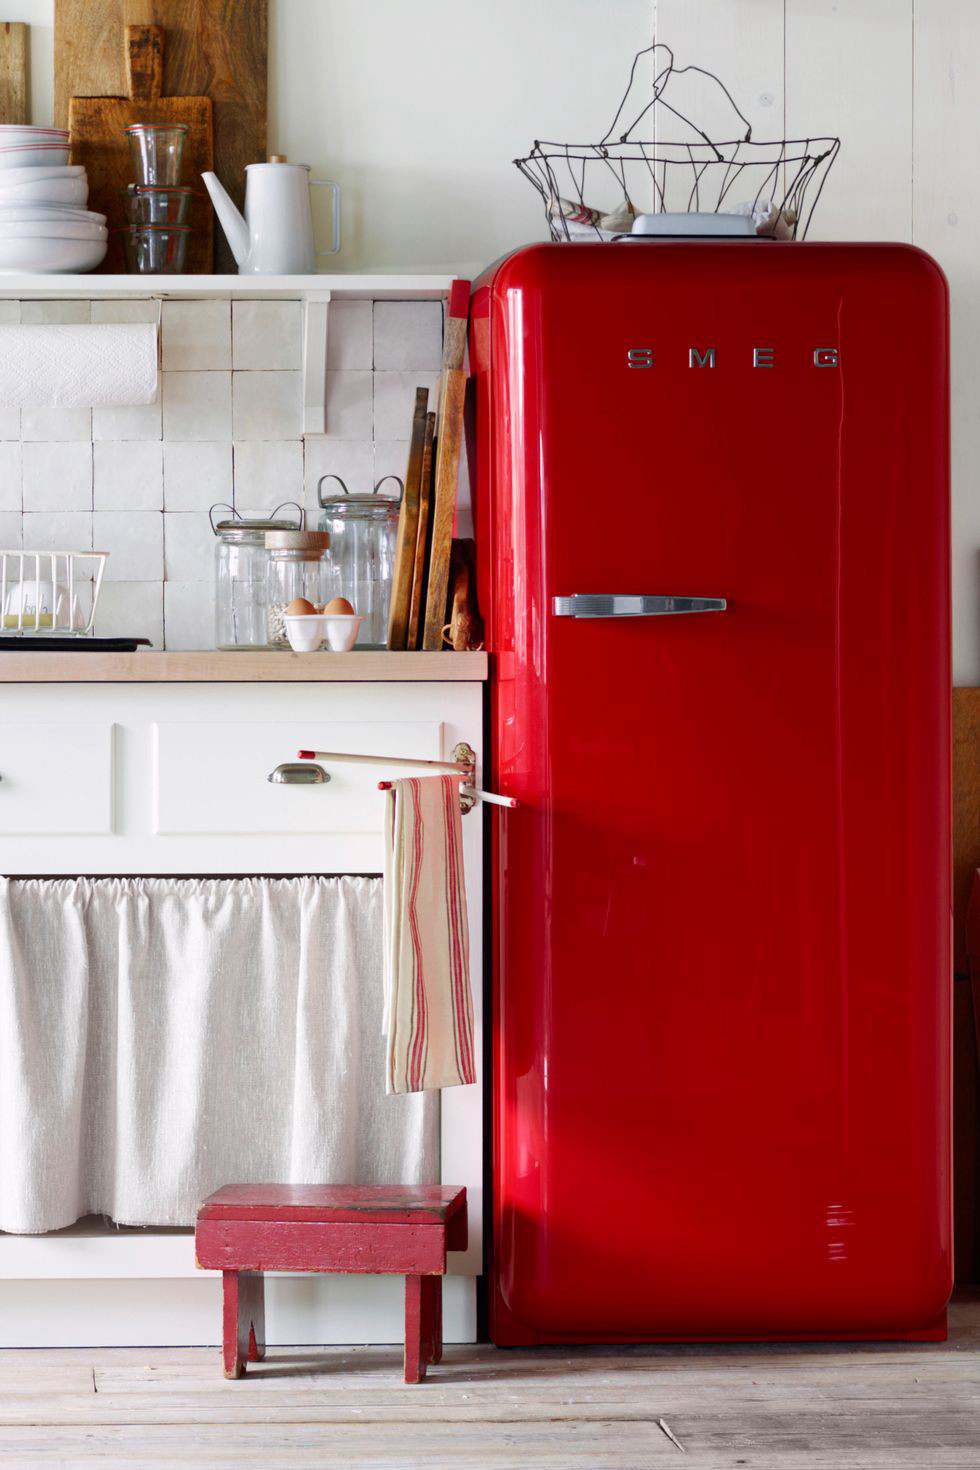 10. Vintage Appliances